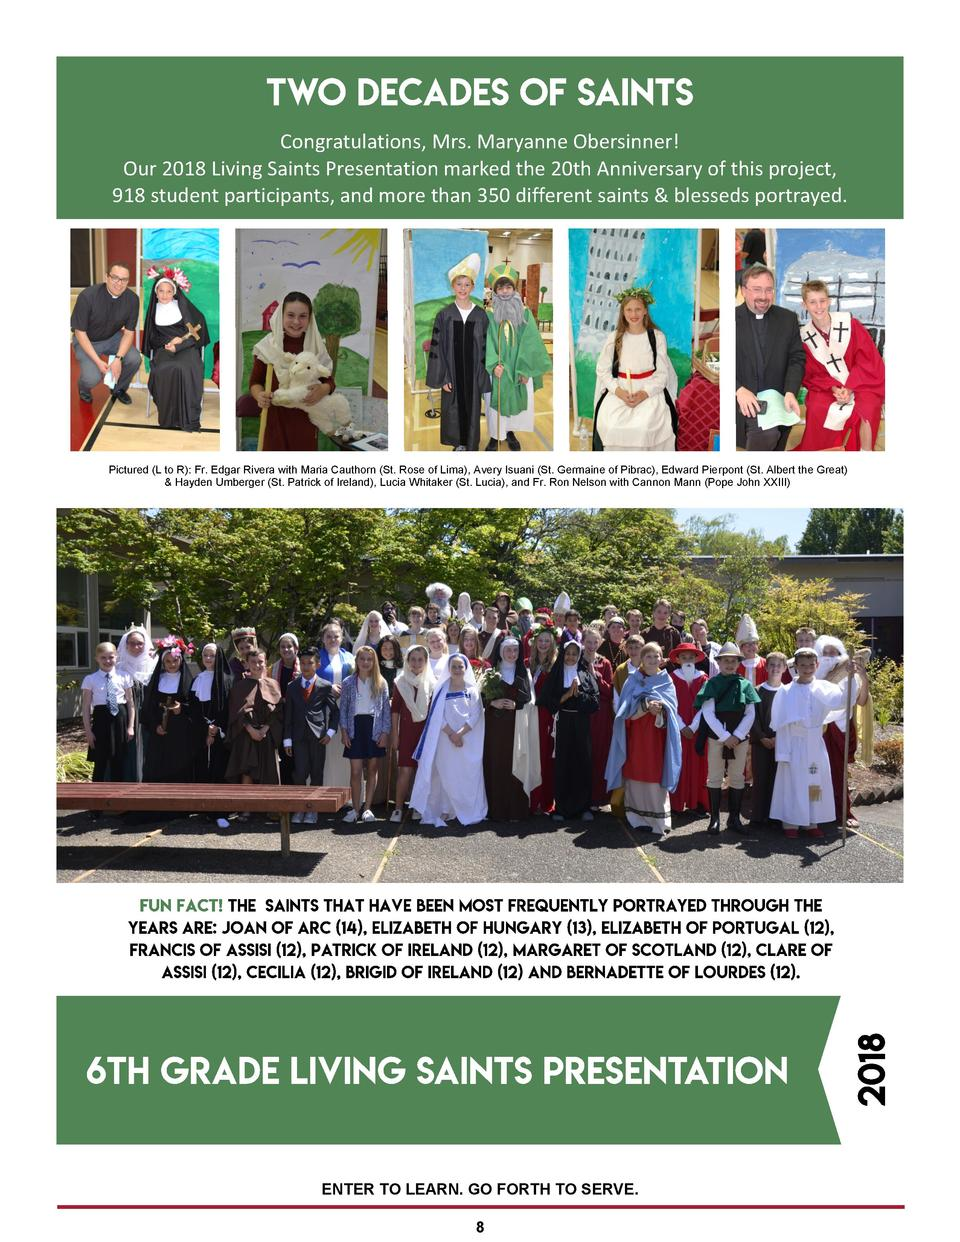 Congratulations, Mrs. Maryanne Obersinner  Our 2018 Living Saints Presentation marked the 20th Anniversary of this project...